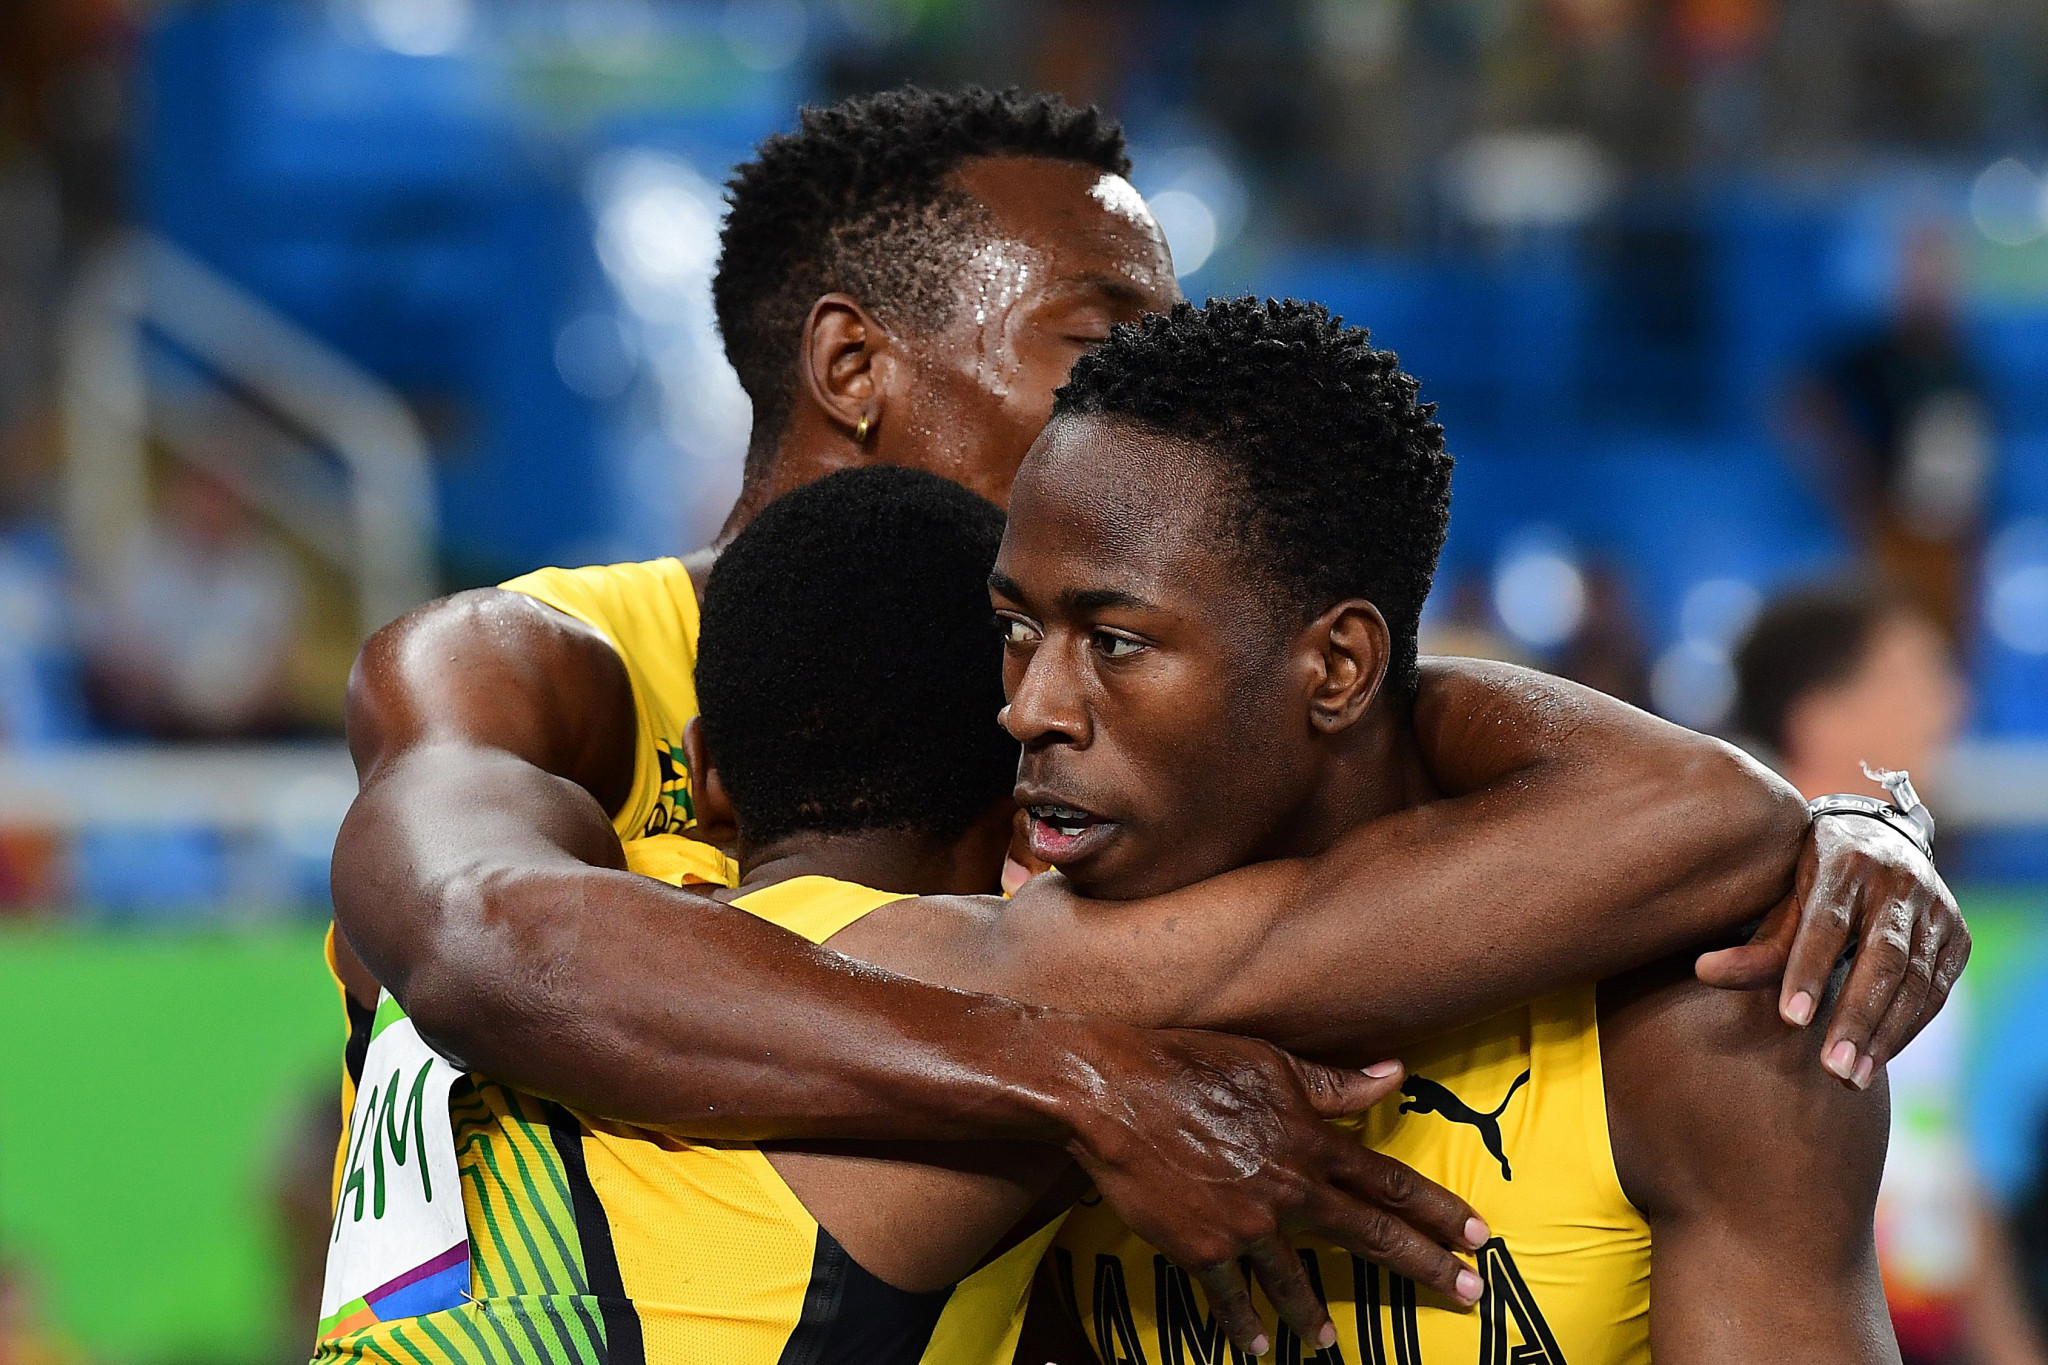 JOA President Christopher Samuda believes Jamaican athletes at the Tokyo 2020 Olympics will